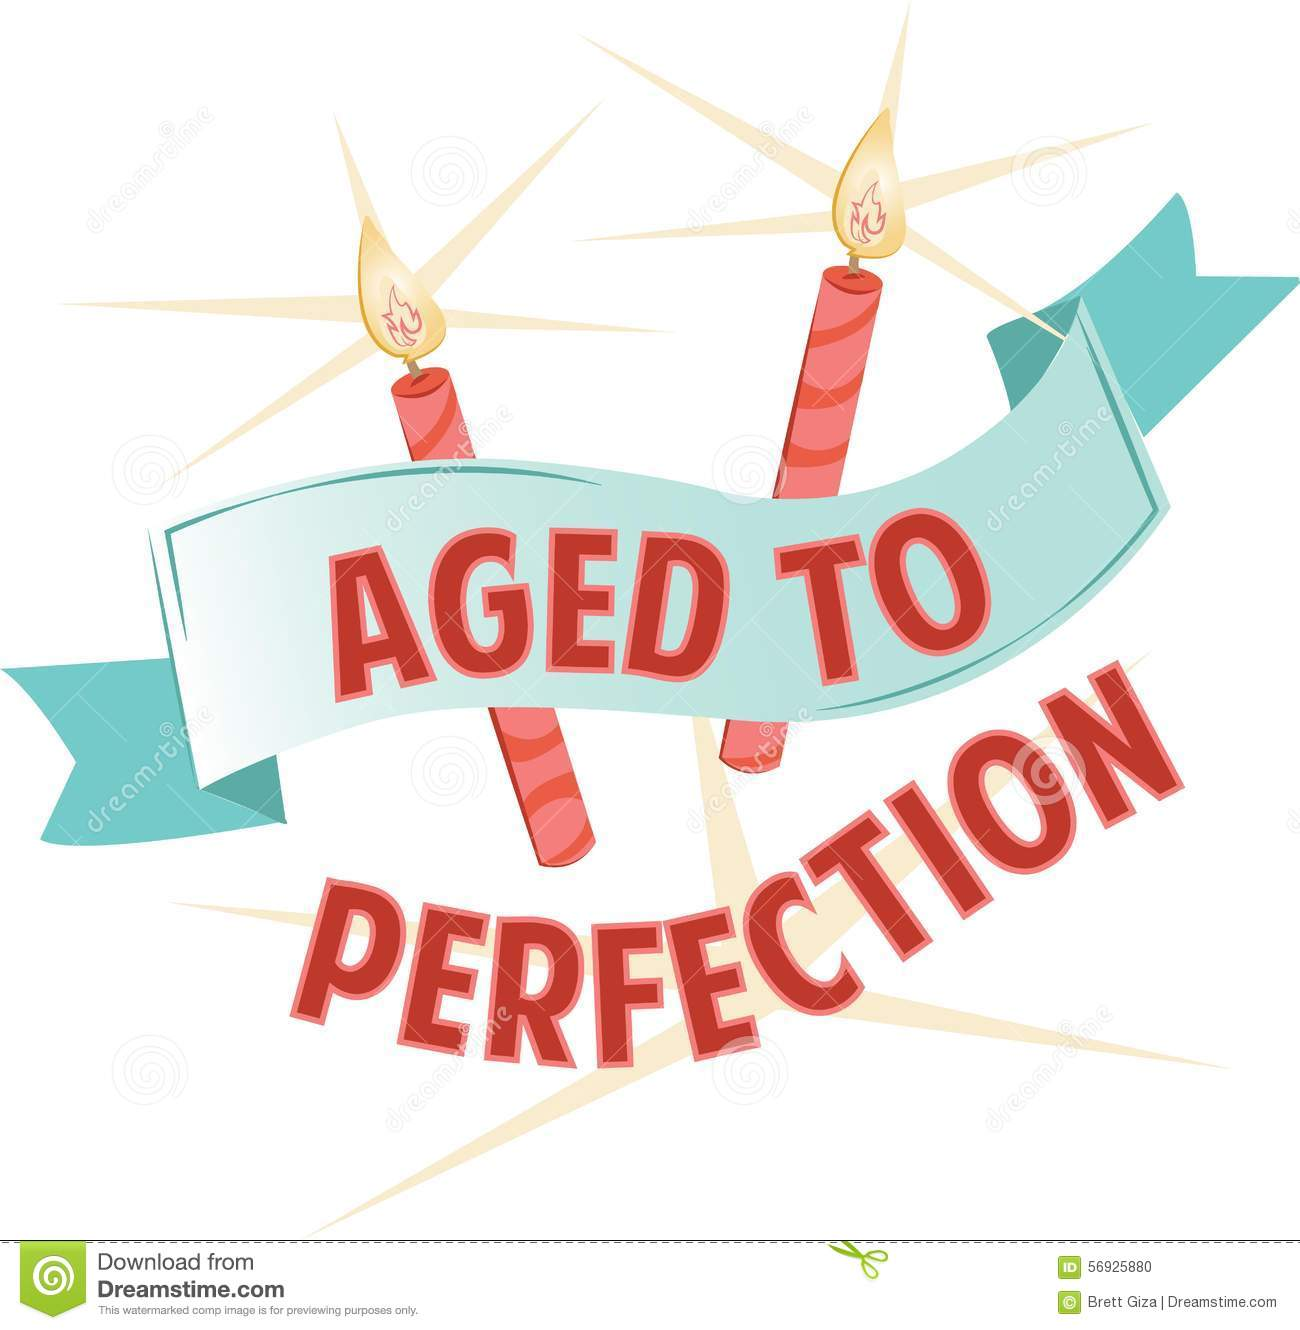 Aged to perfection clipart.